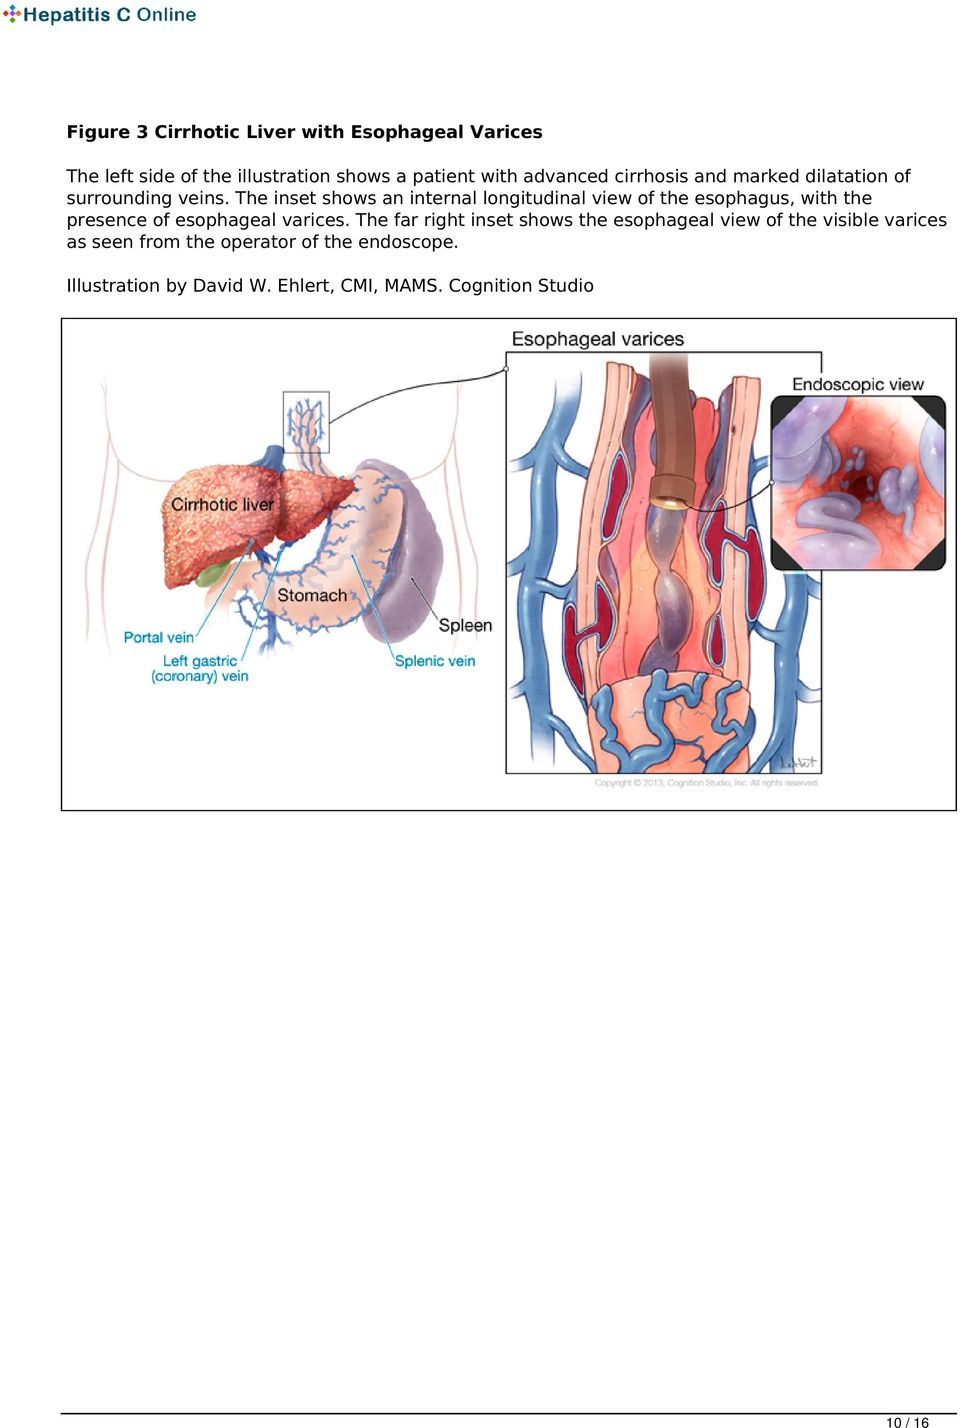 The inset shows an internal longitudinal view of the esophagus, with the presence of esophageal varices.